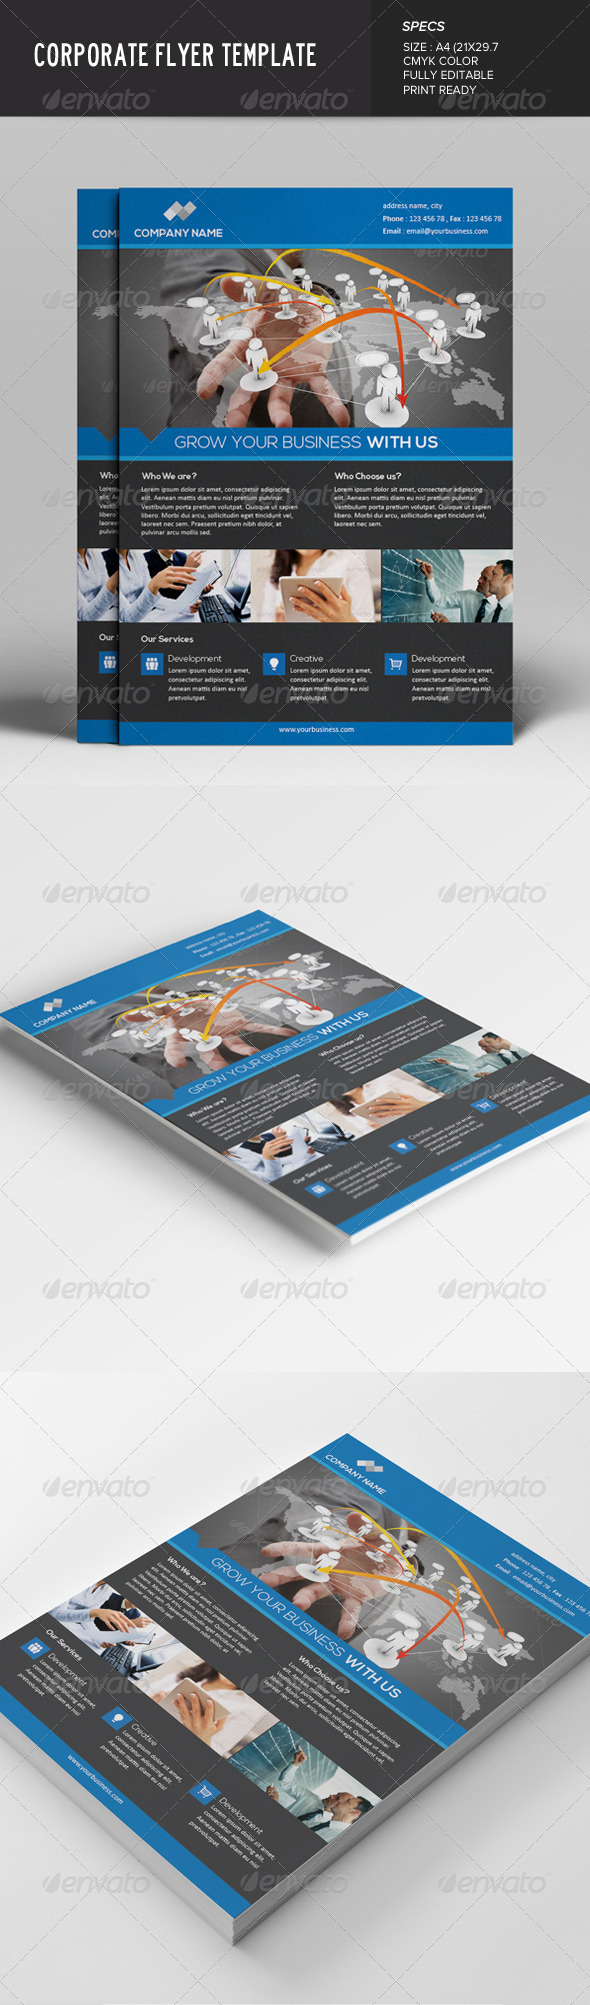 GraphicRiver Corporate Flyer Template 7642625